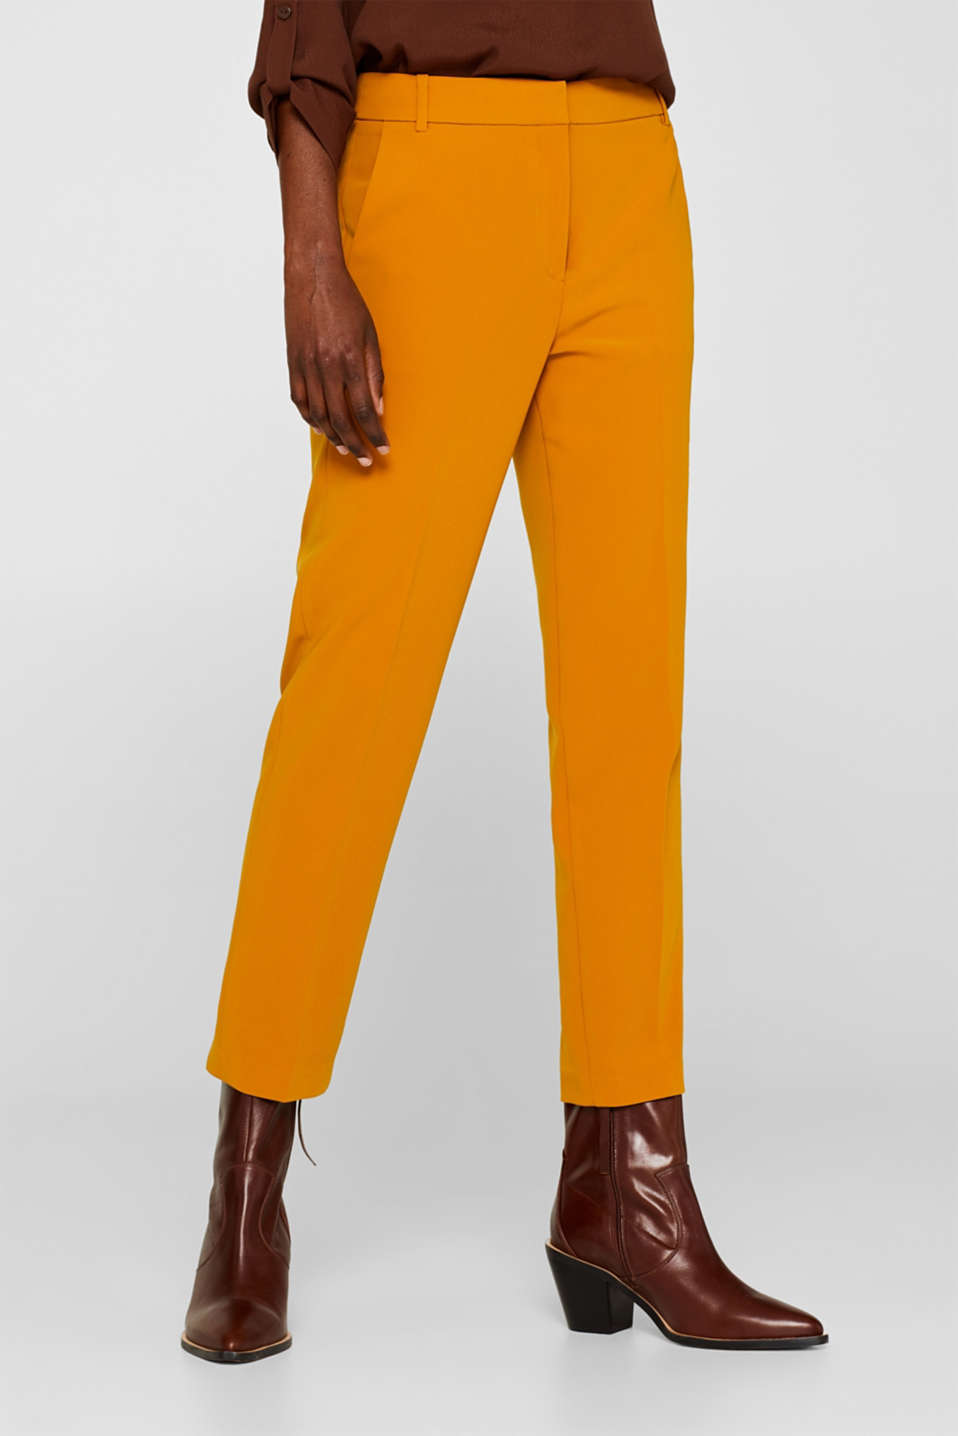 TAILORING Mix + Match stretch trousers, AMBER YELLOW, detail image number 6